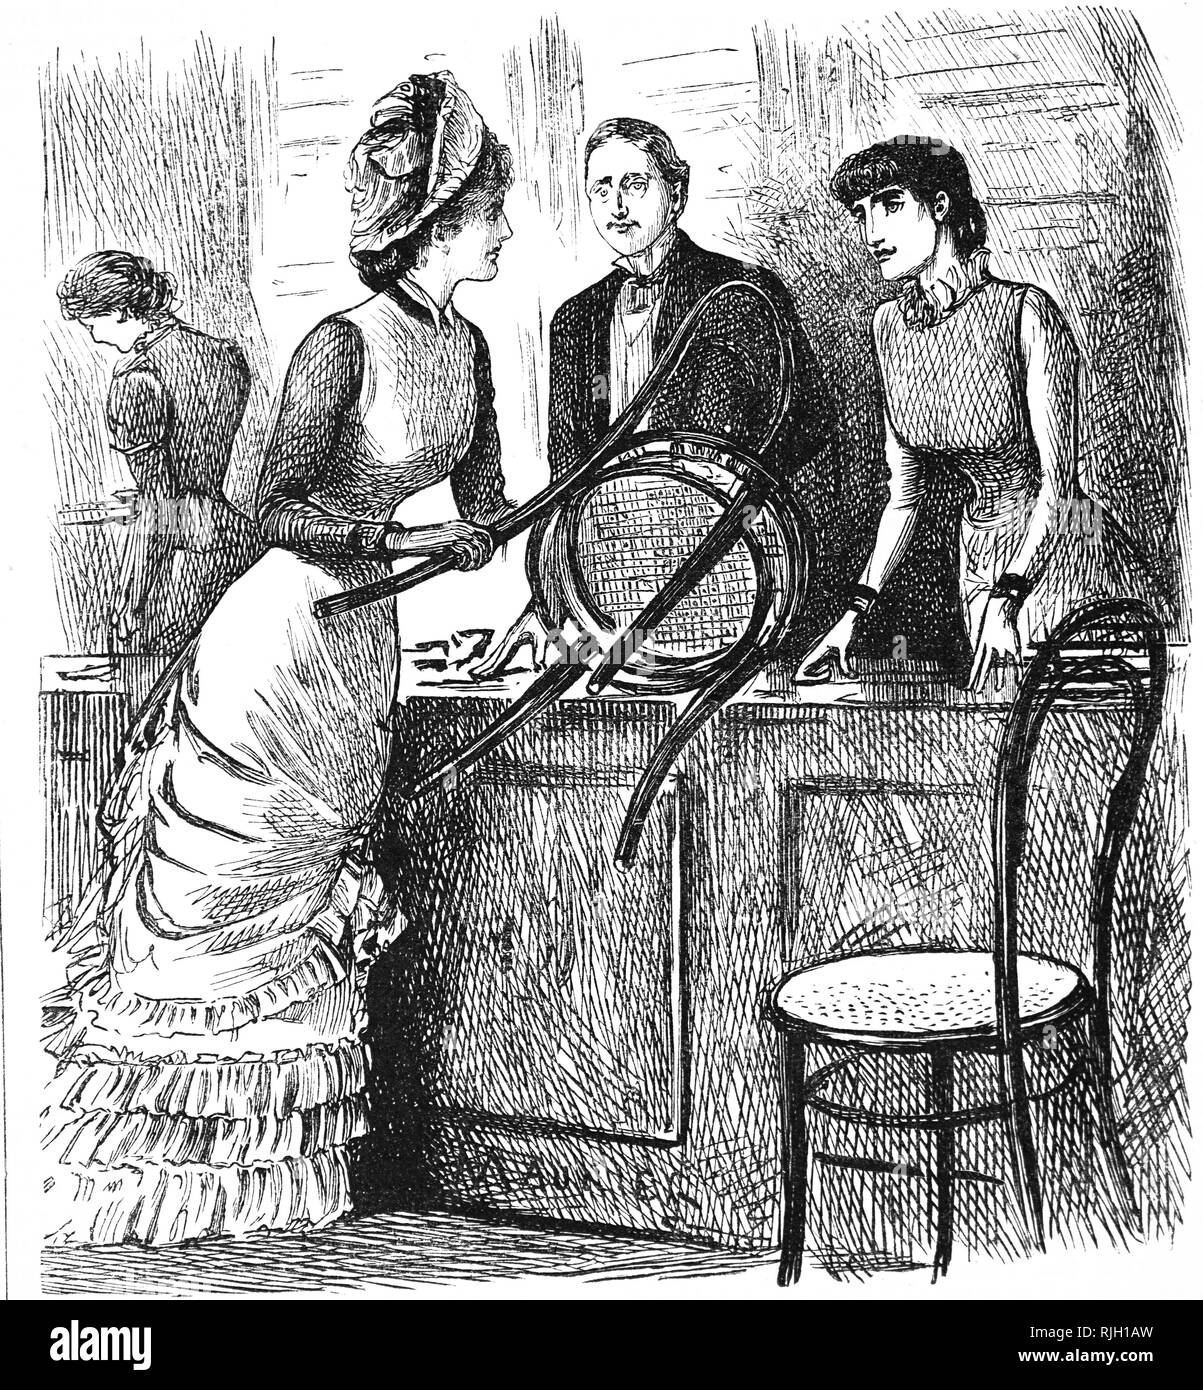 A cartoon commenting on the working conditions of shop assistants. Illustrated by George du Maurier (1834-1896) a Franco-British cartoonist and author. Dated 19th century - Stock Image